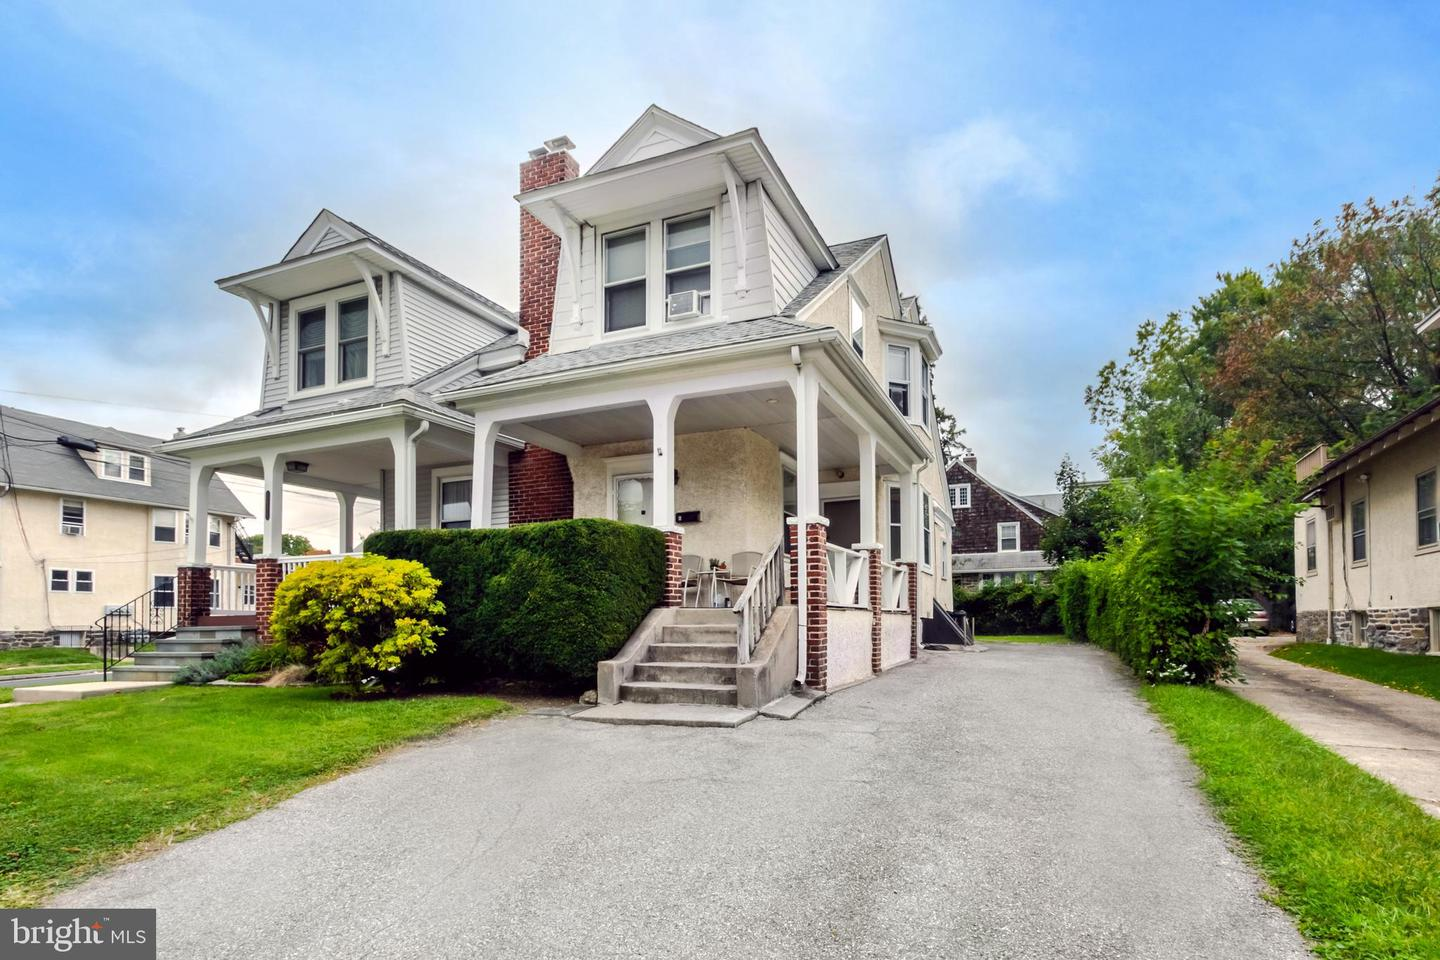 2129 E Darby Road Havertown, PA 19083